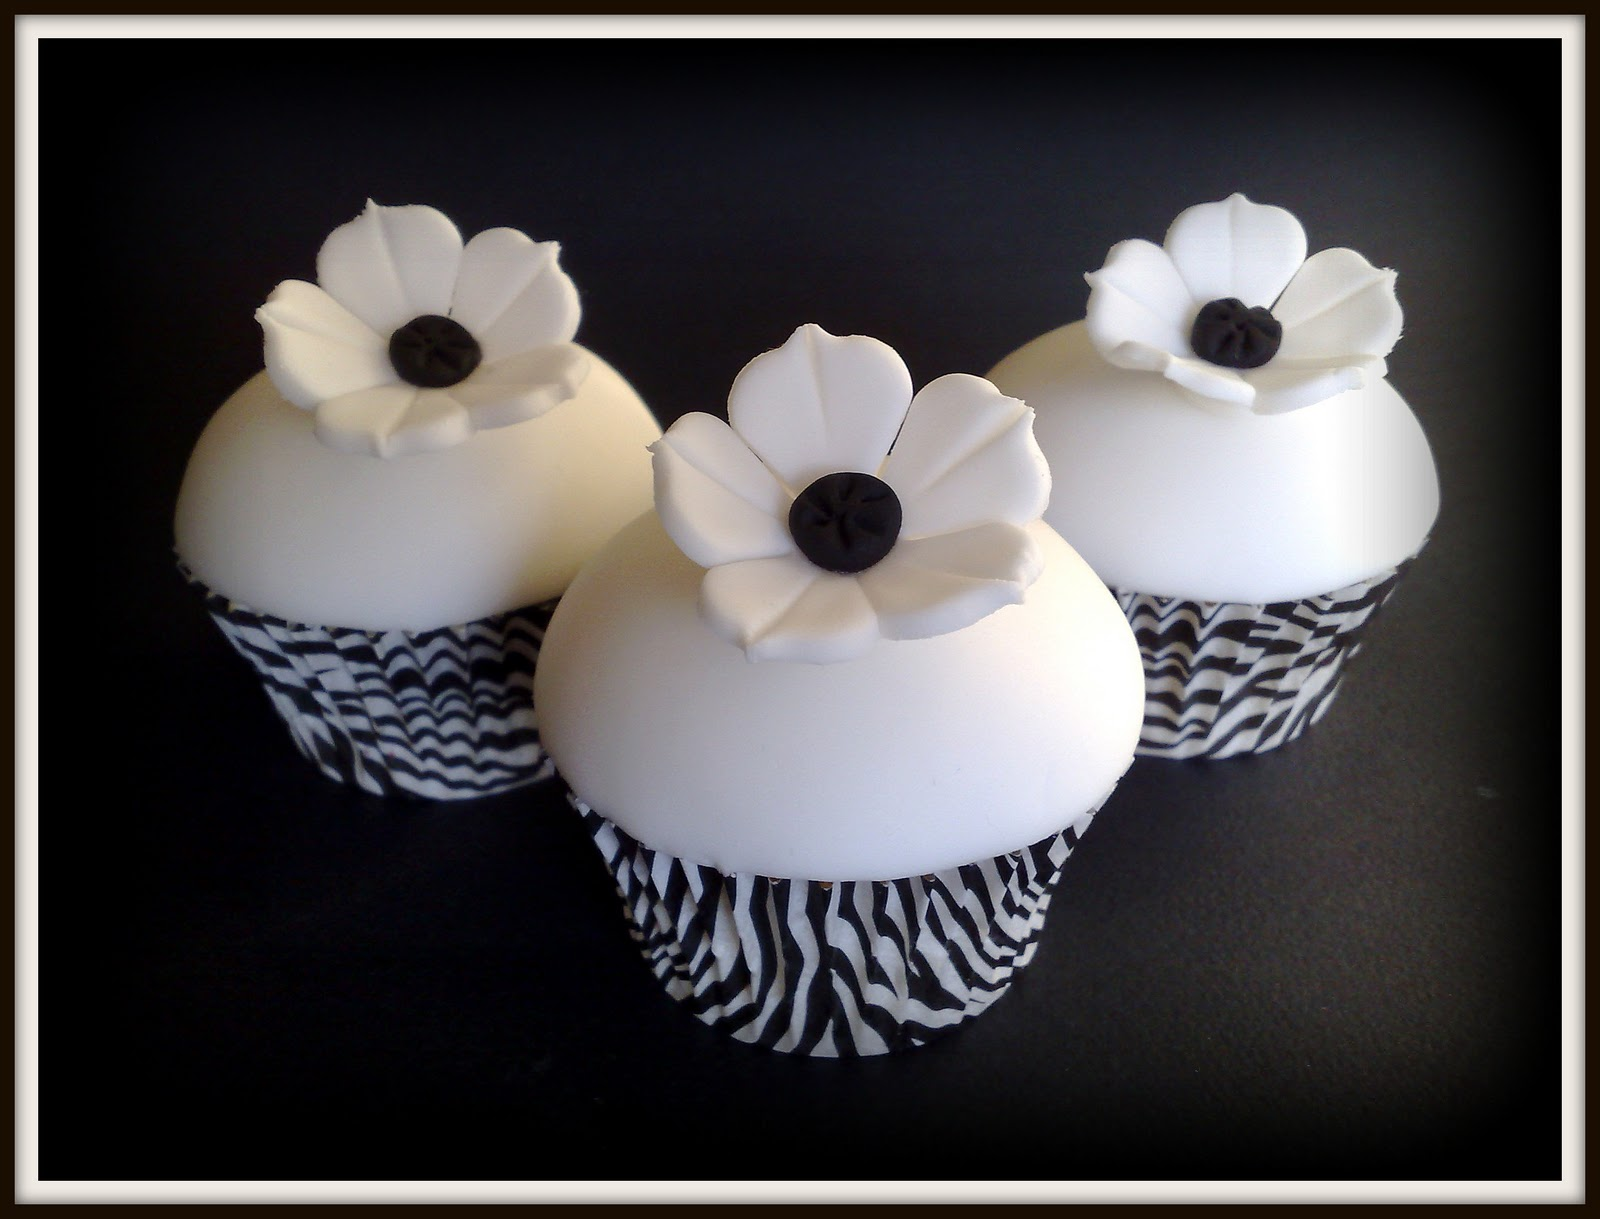 black and white zebra print flower cupcakes, black and white cupcakes, wedding cupcakes, flower cupcakes, food, cupcakes, dessert, cupcake